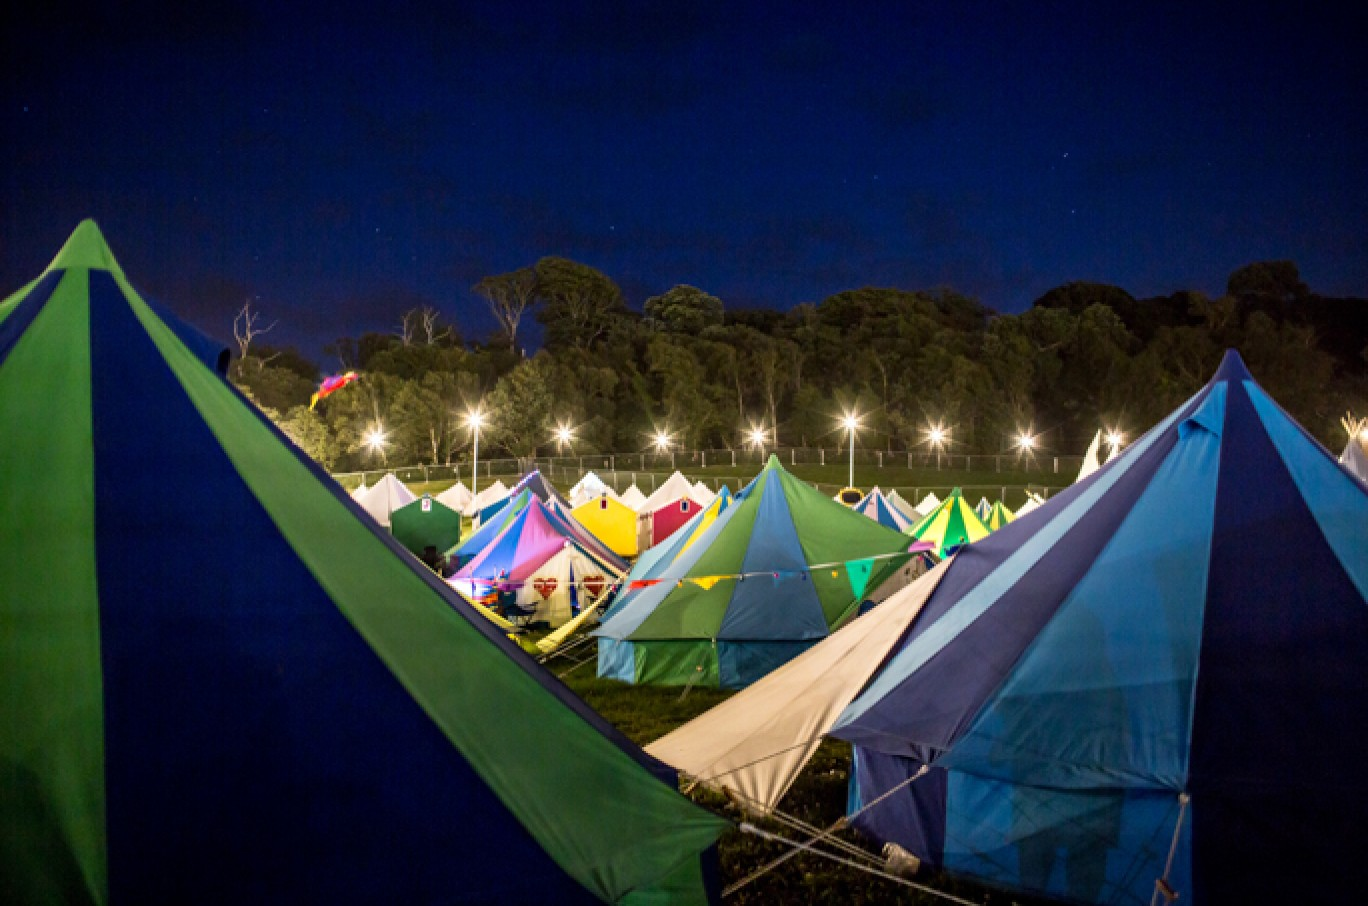 6_98-camp-bestival-friday-226771501585067